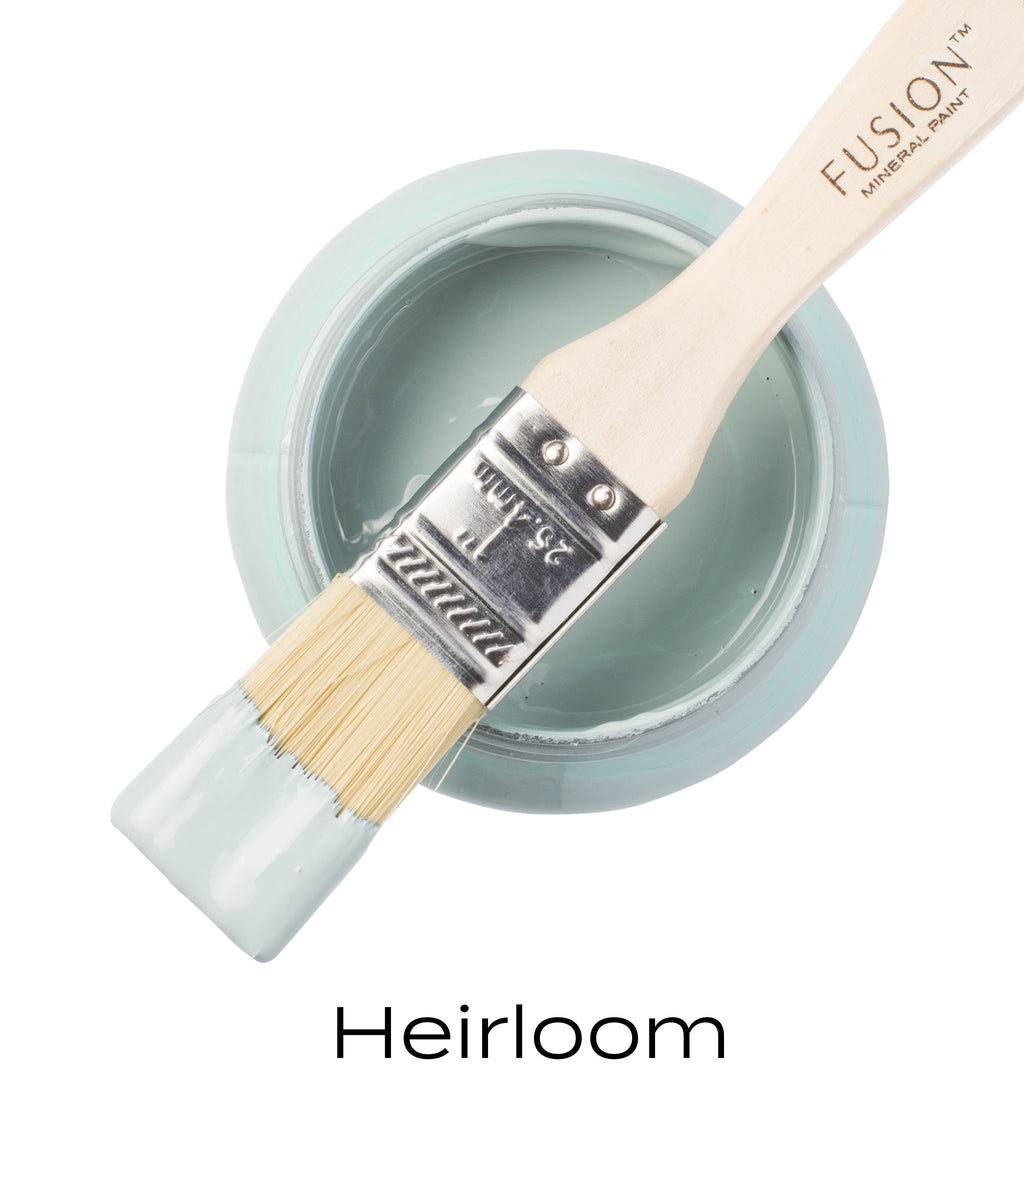 Heirloom Fusion Mineral Paint Near Me